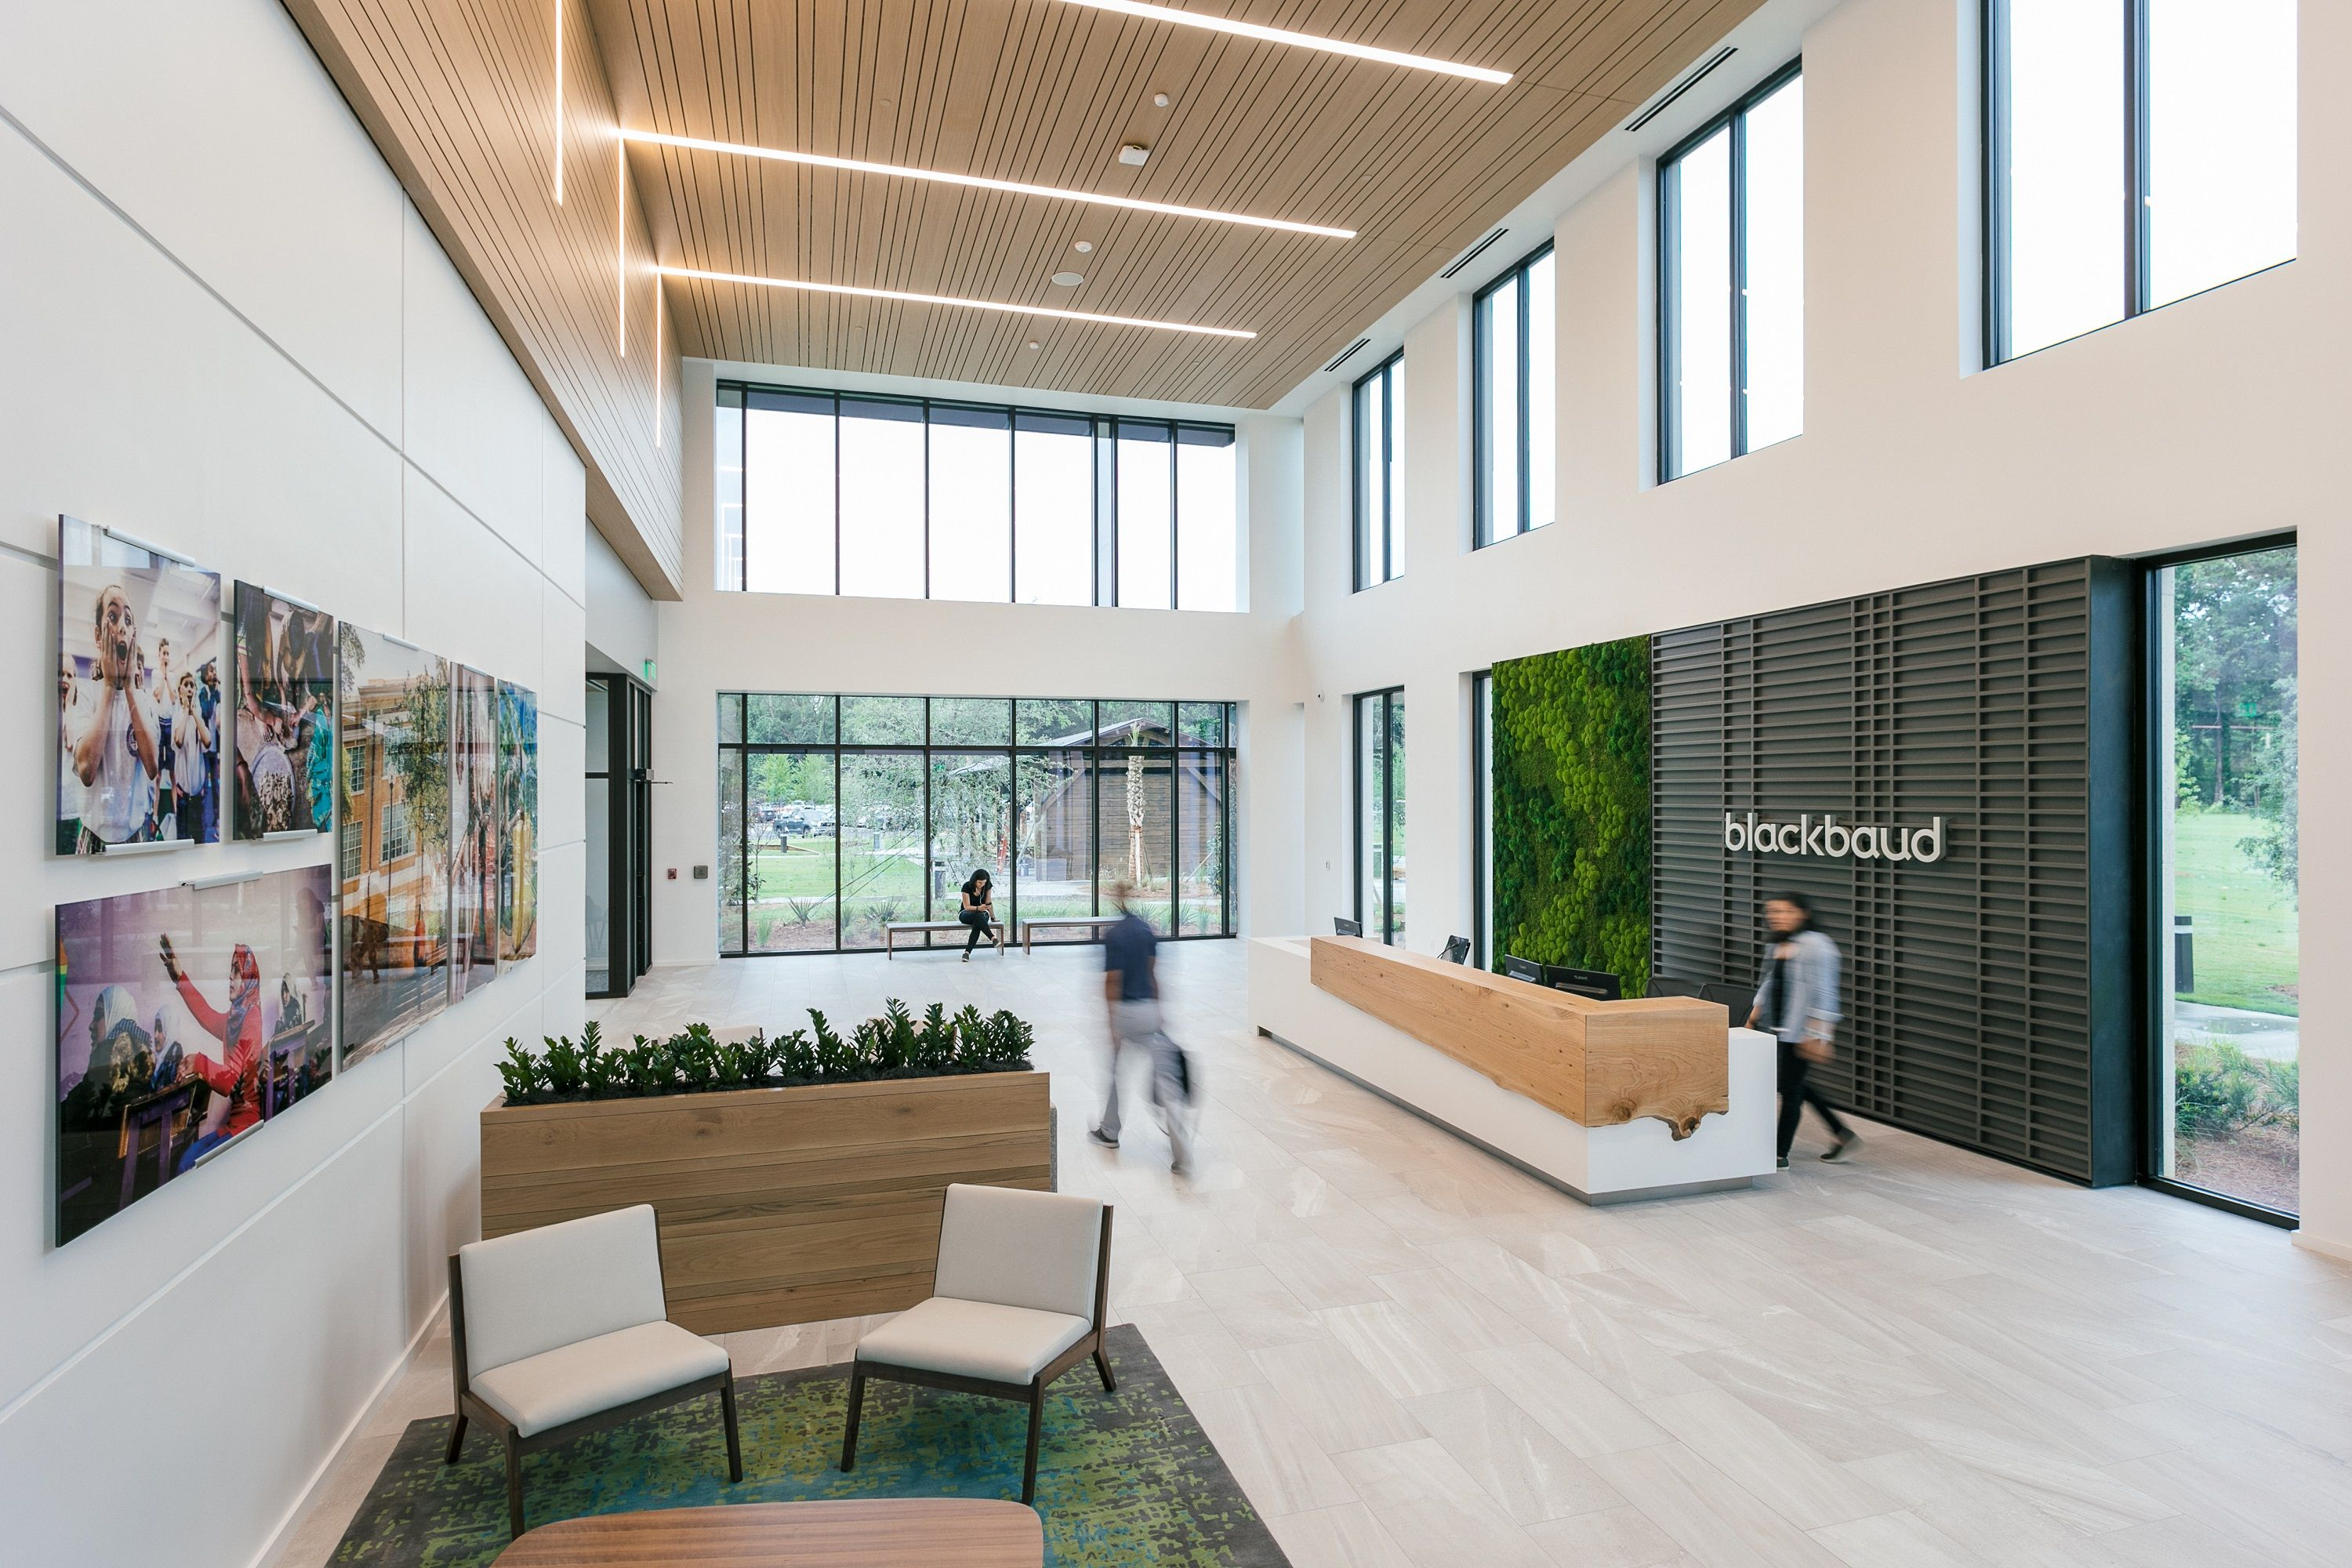 Topakustik Usa Acoustical Wood Micro Perforated Grooved Design Firms Home Service Design